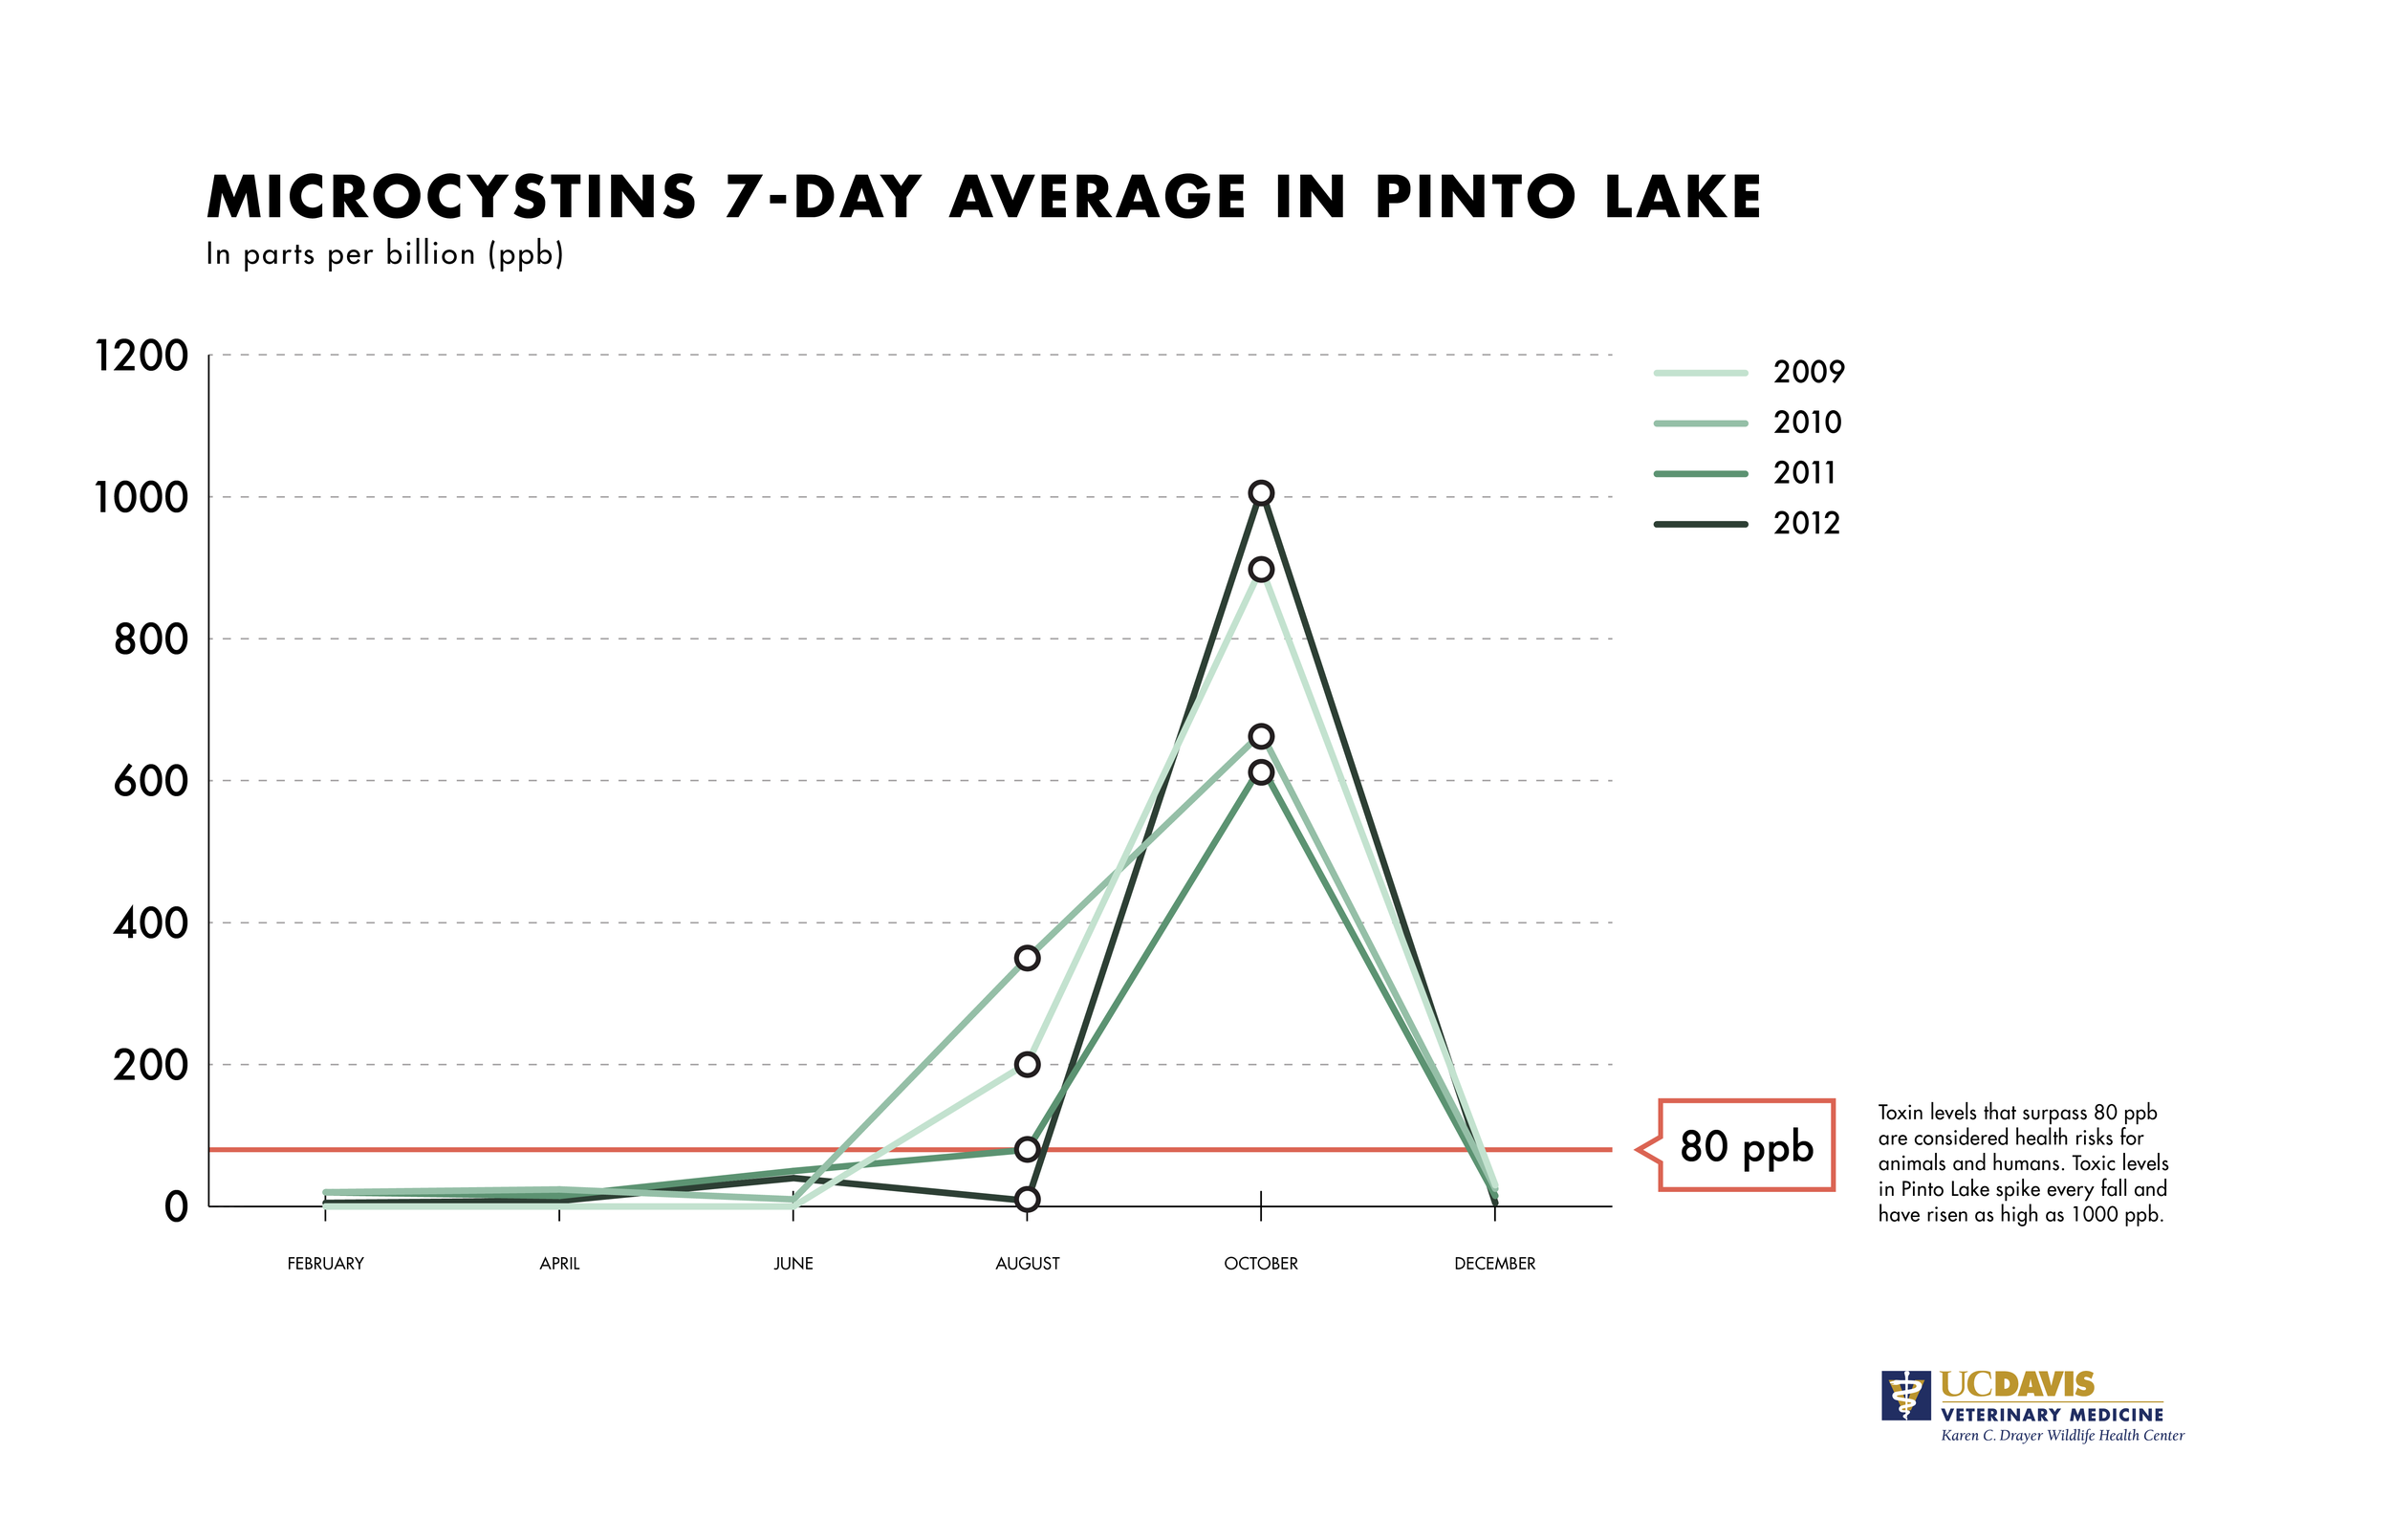 Every fall, Pinto Lake's microcystin levels spike way beyond what's considered dangerous for humans and animals.